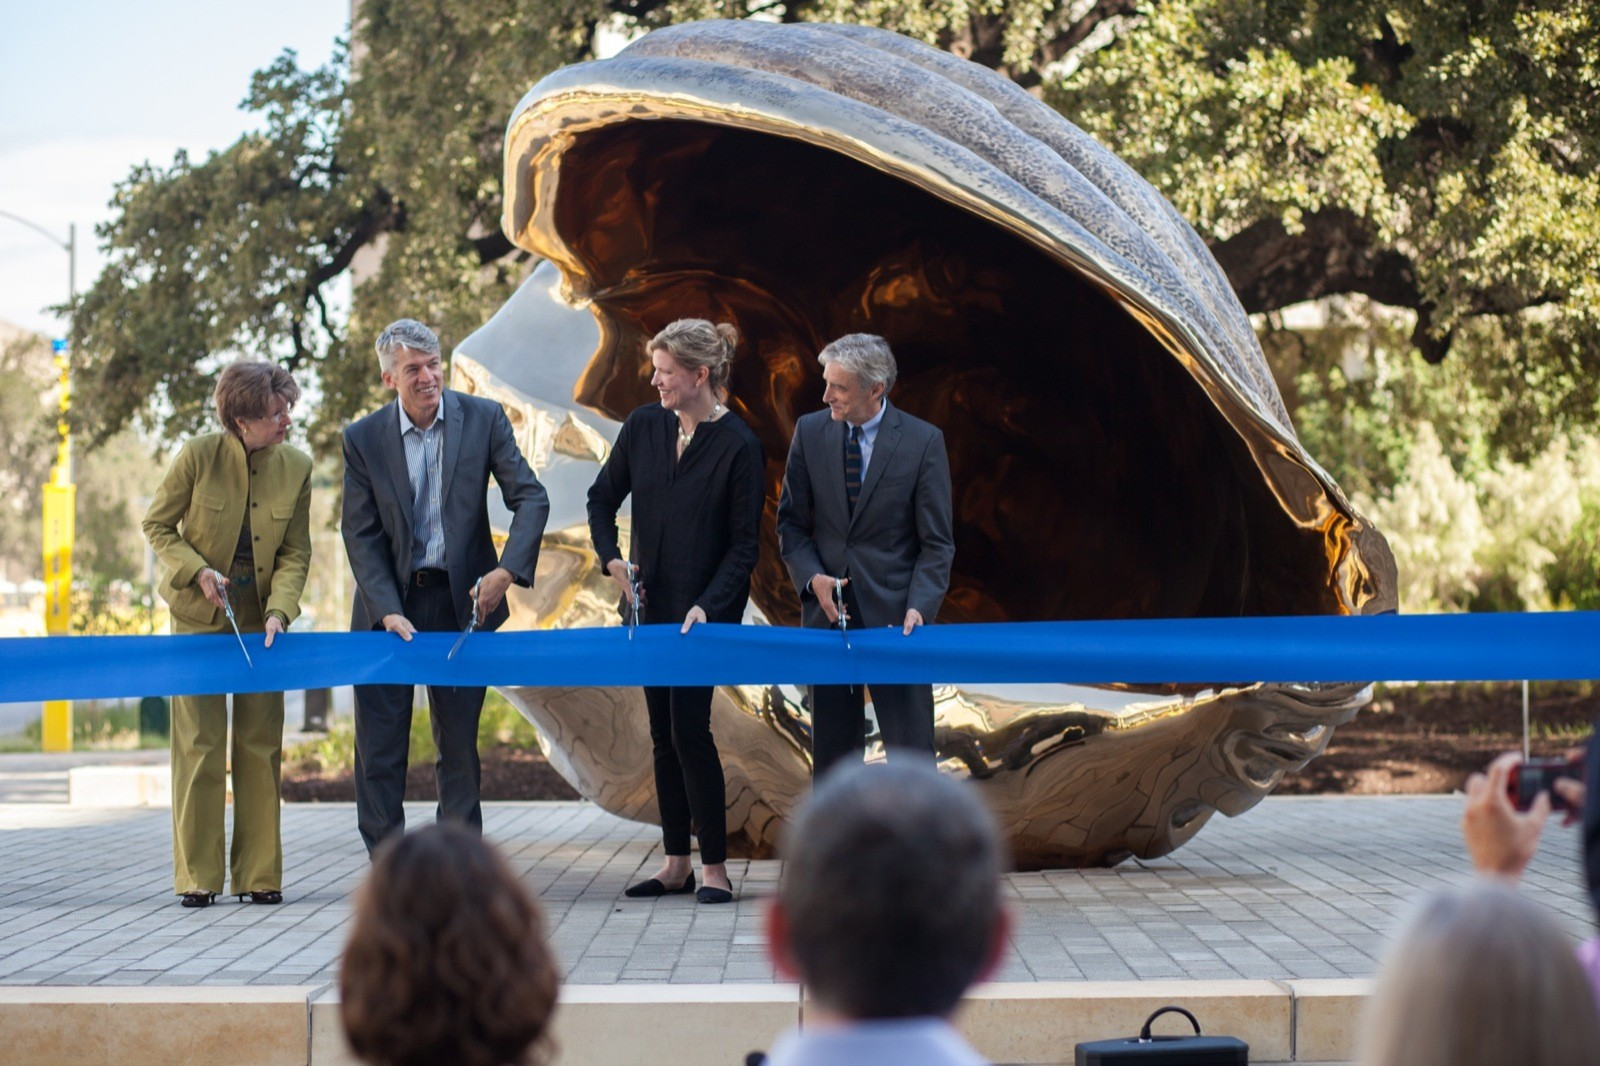 Four people about to cut a large ribbon in front of a bronze shell